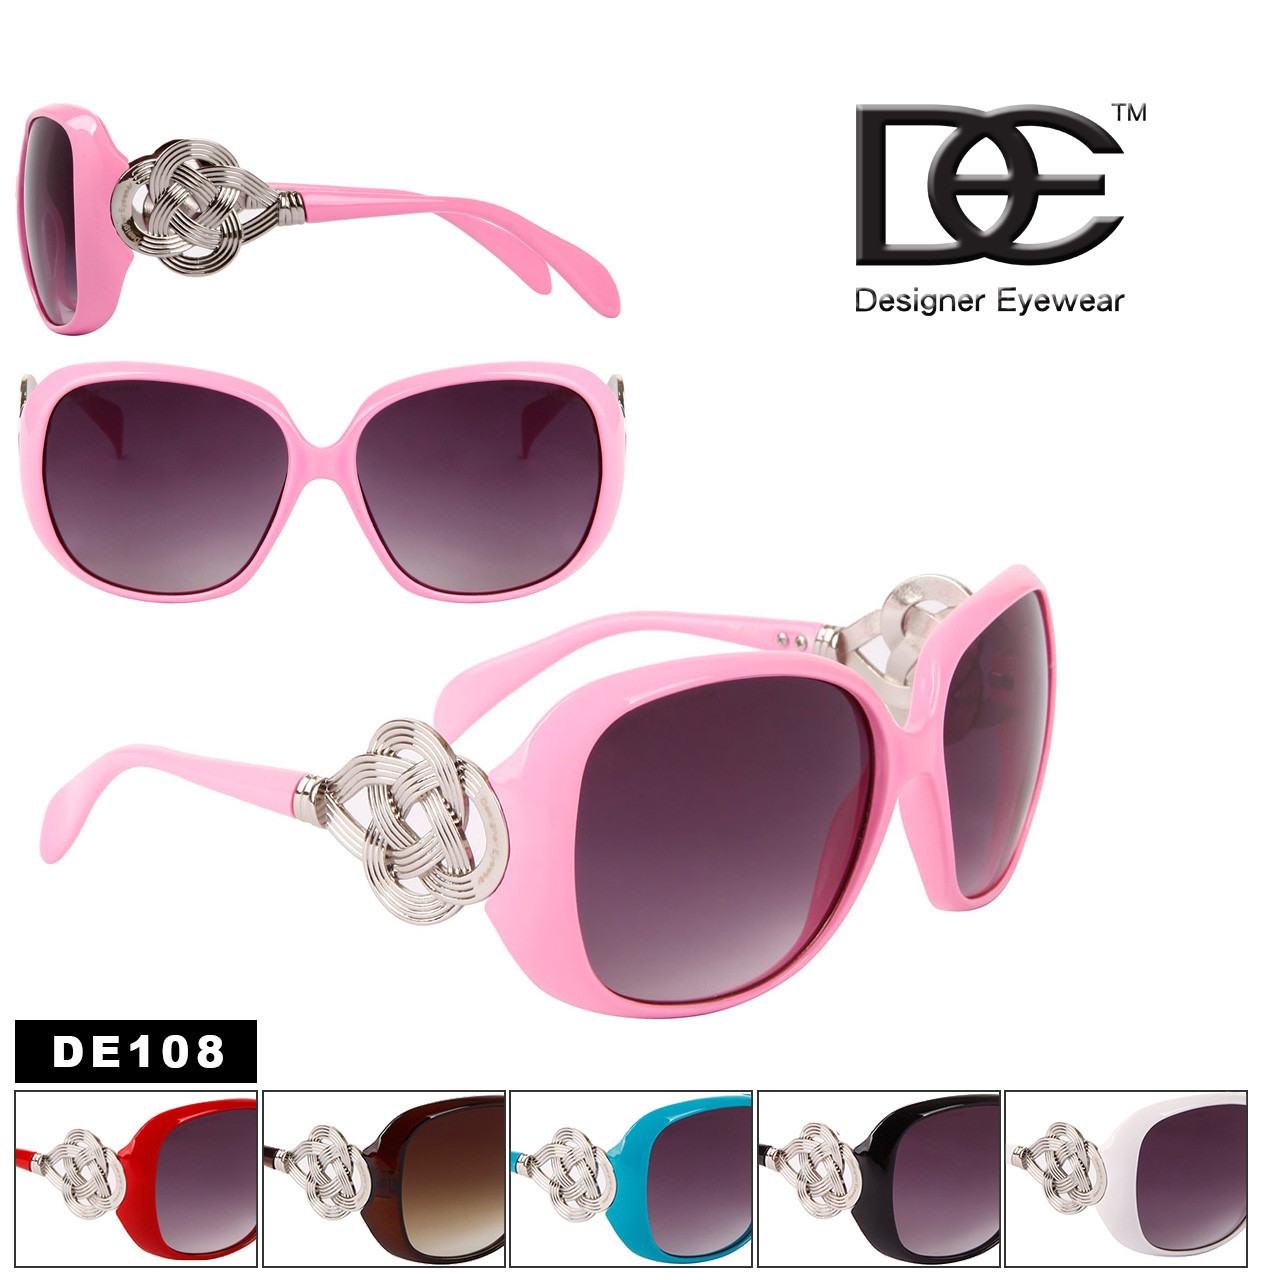 DE™ Designer Eyewear Fashion Sunglasses - Style #DE108